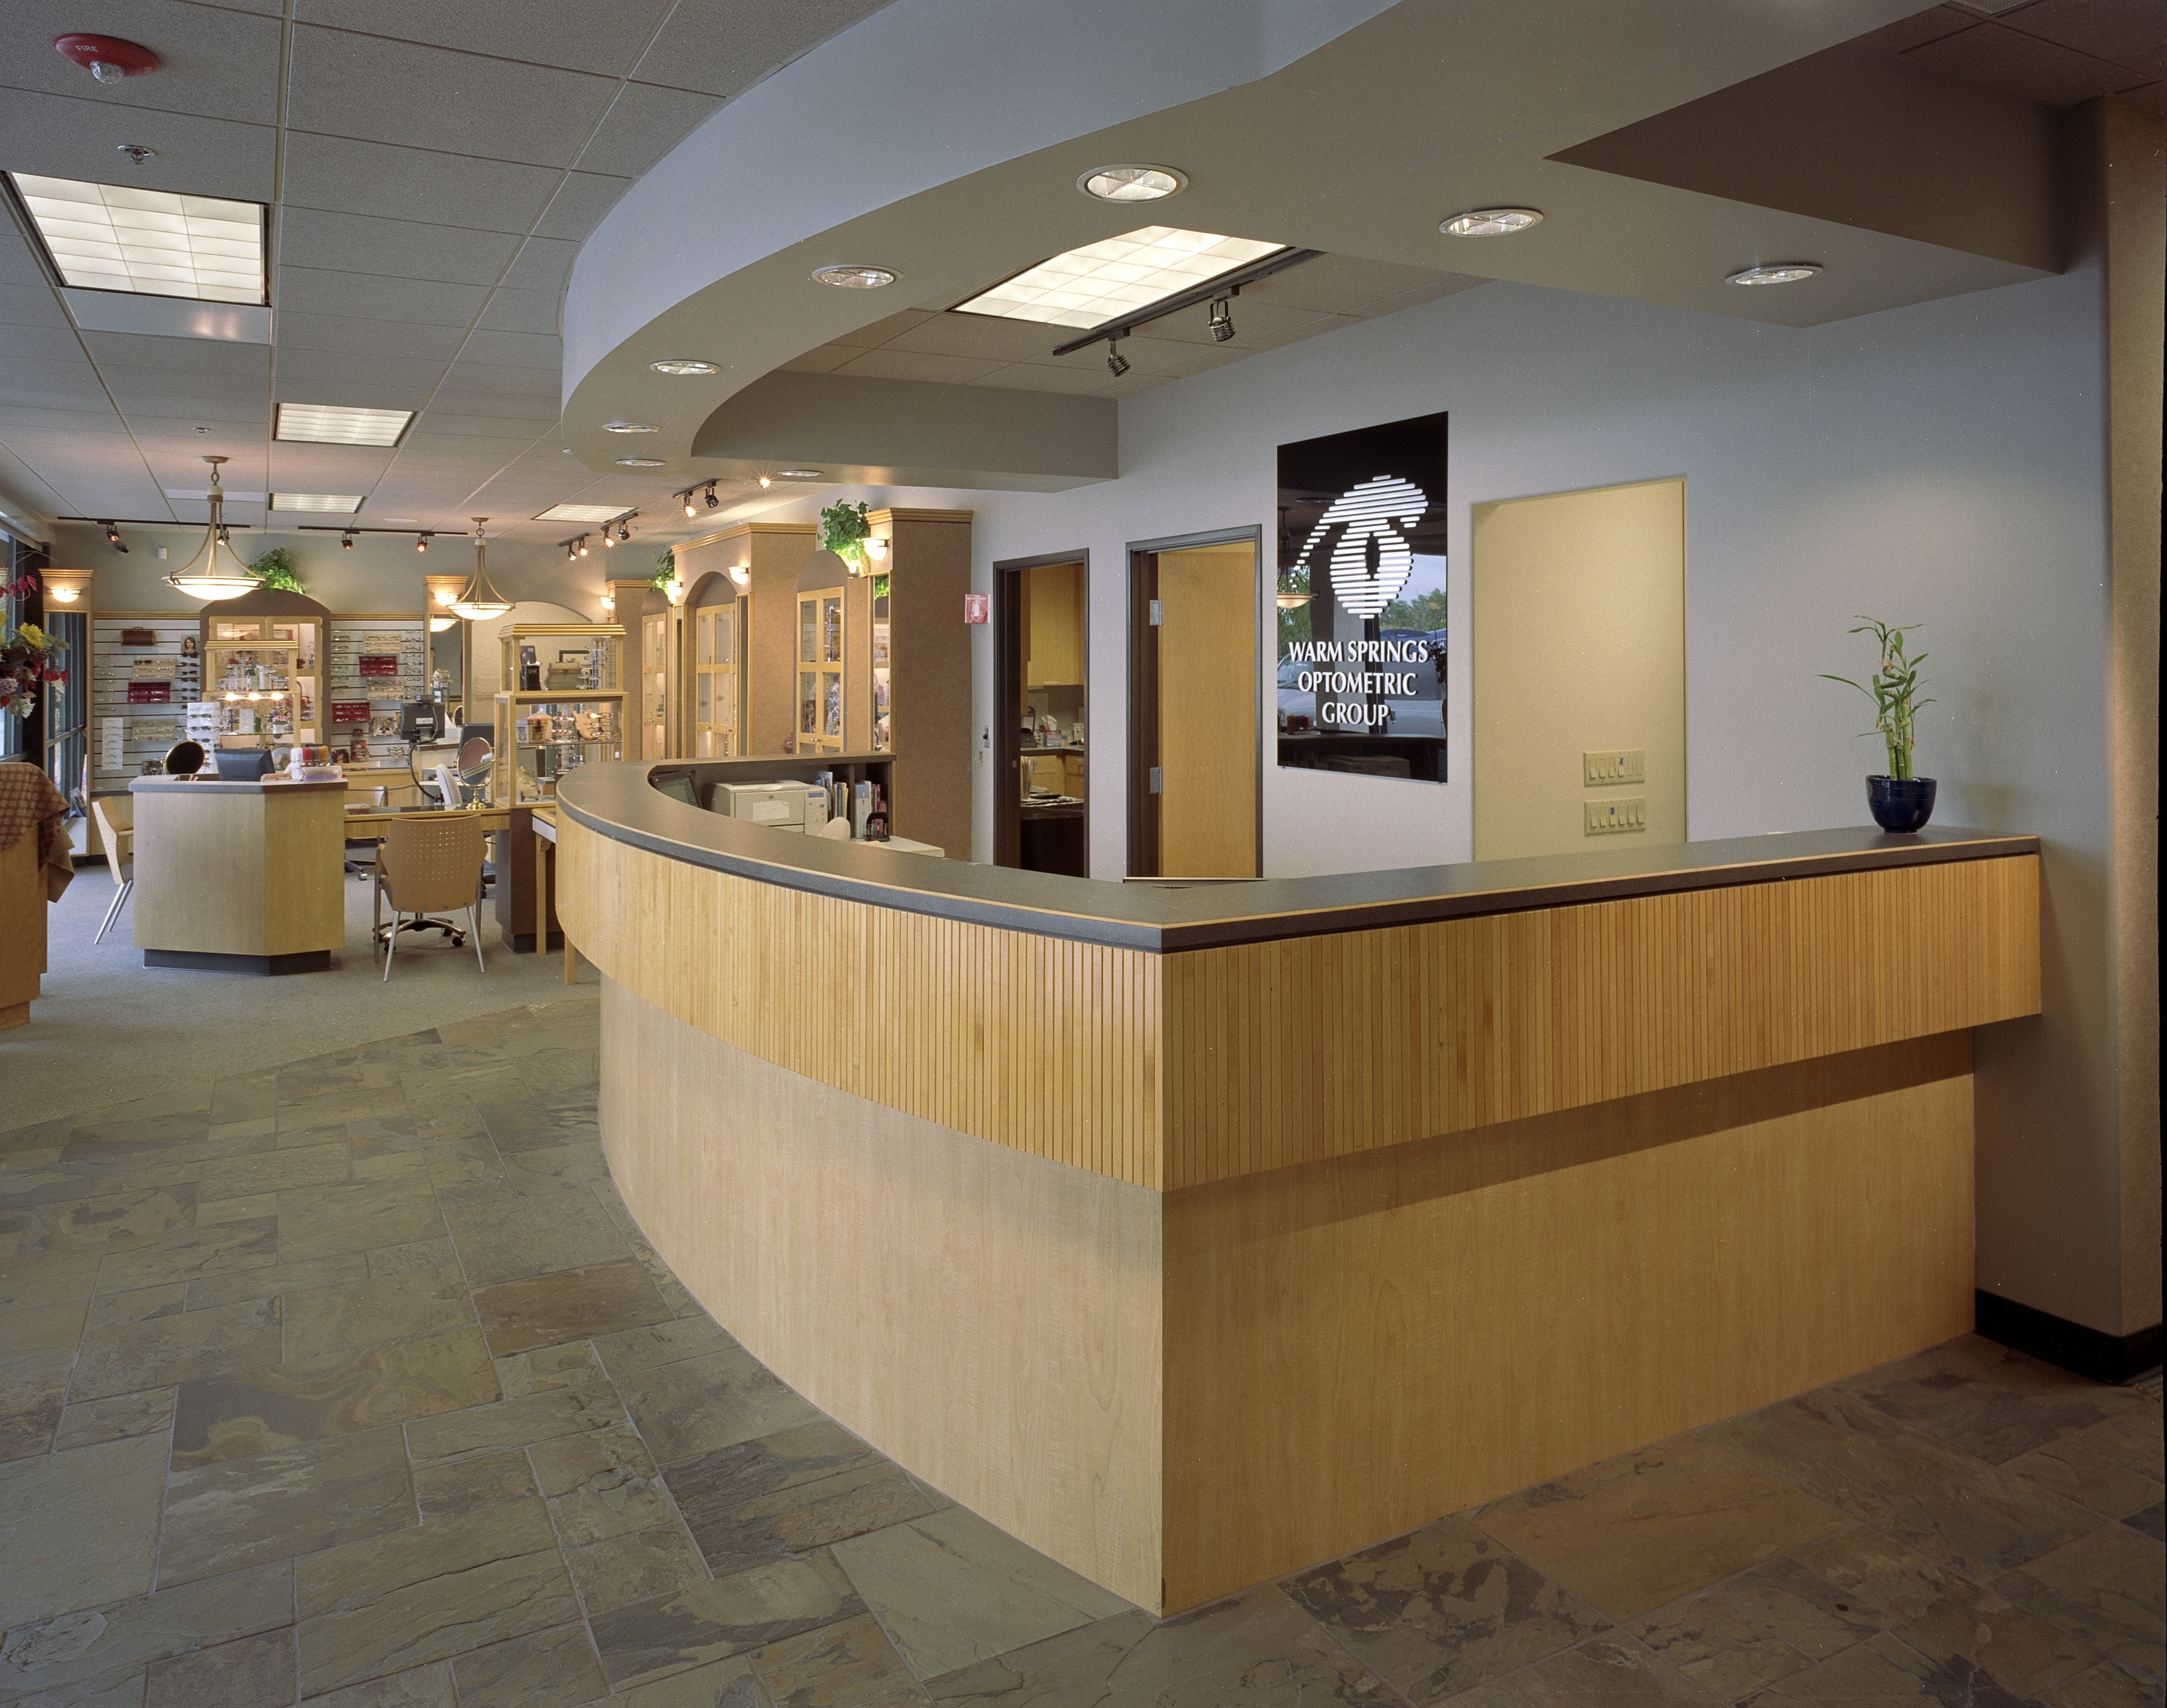 Hillhouse – Optometery Office, Milpitas